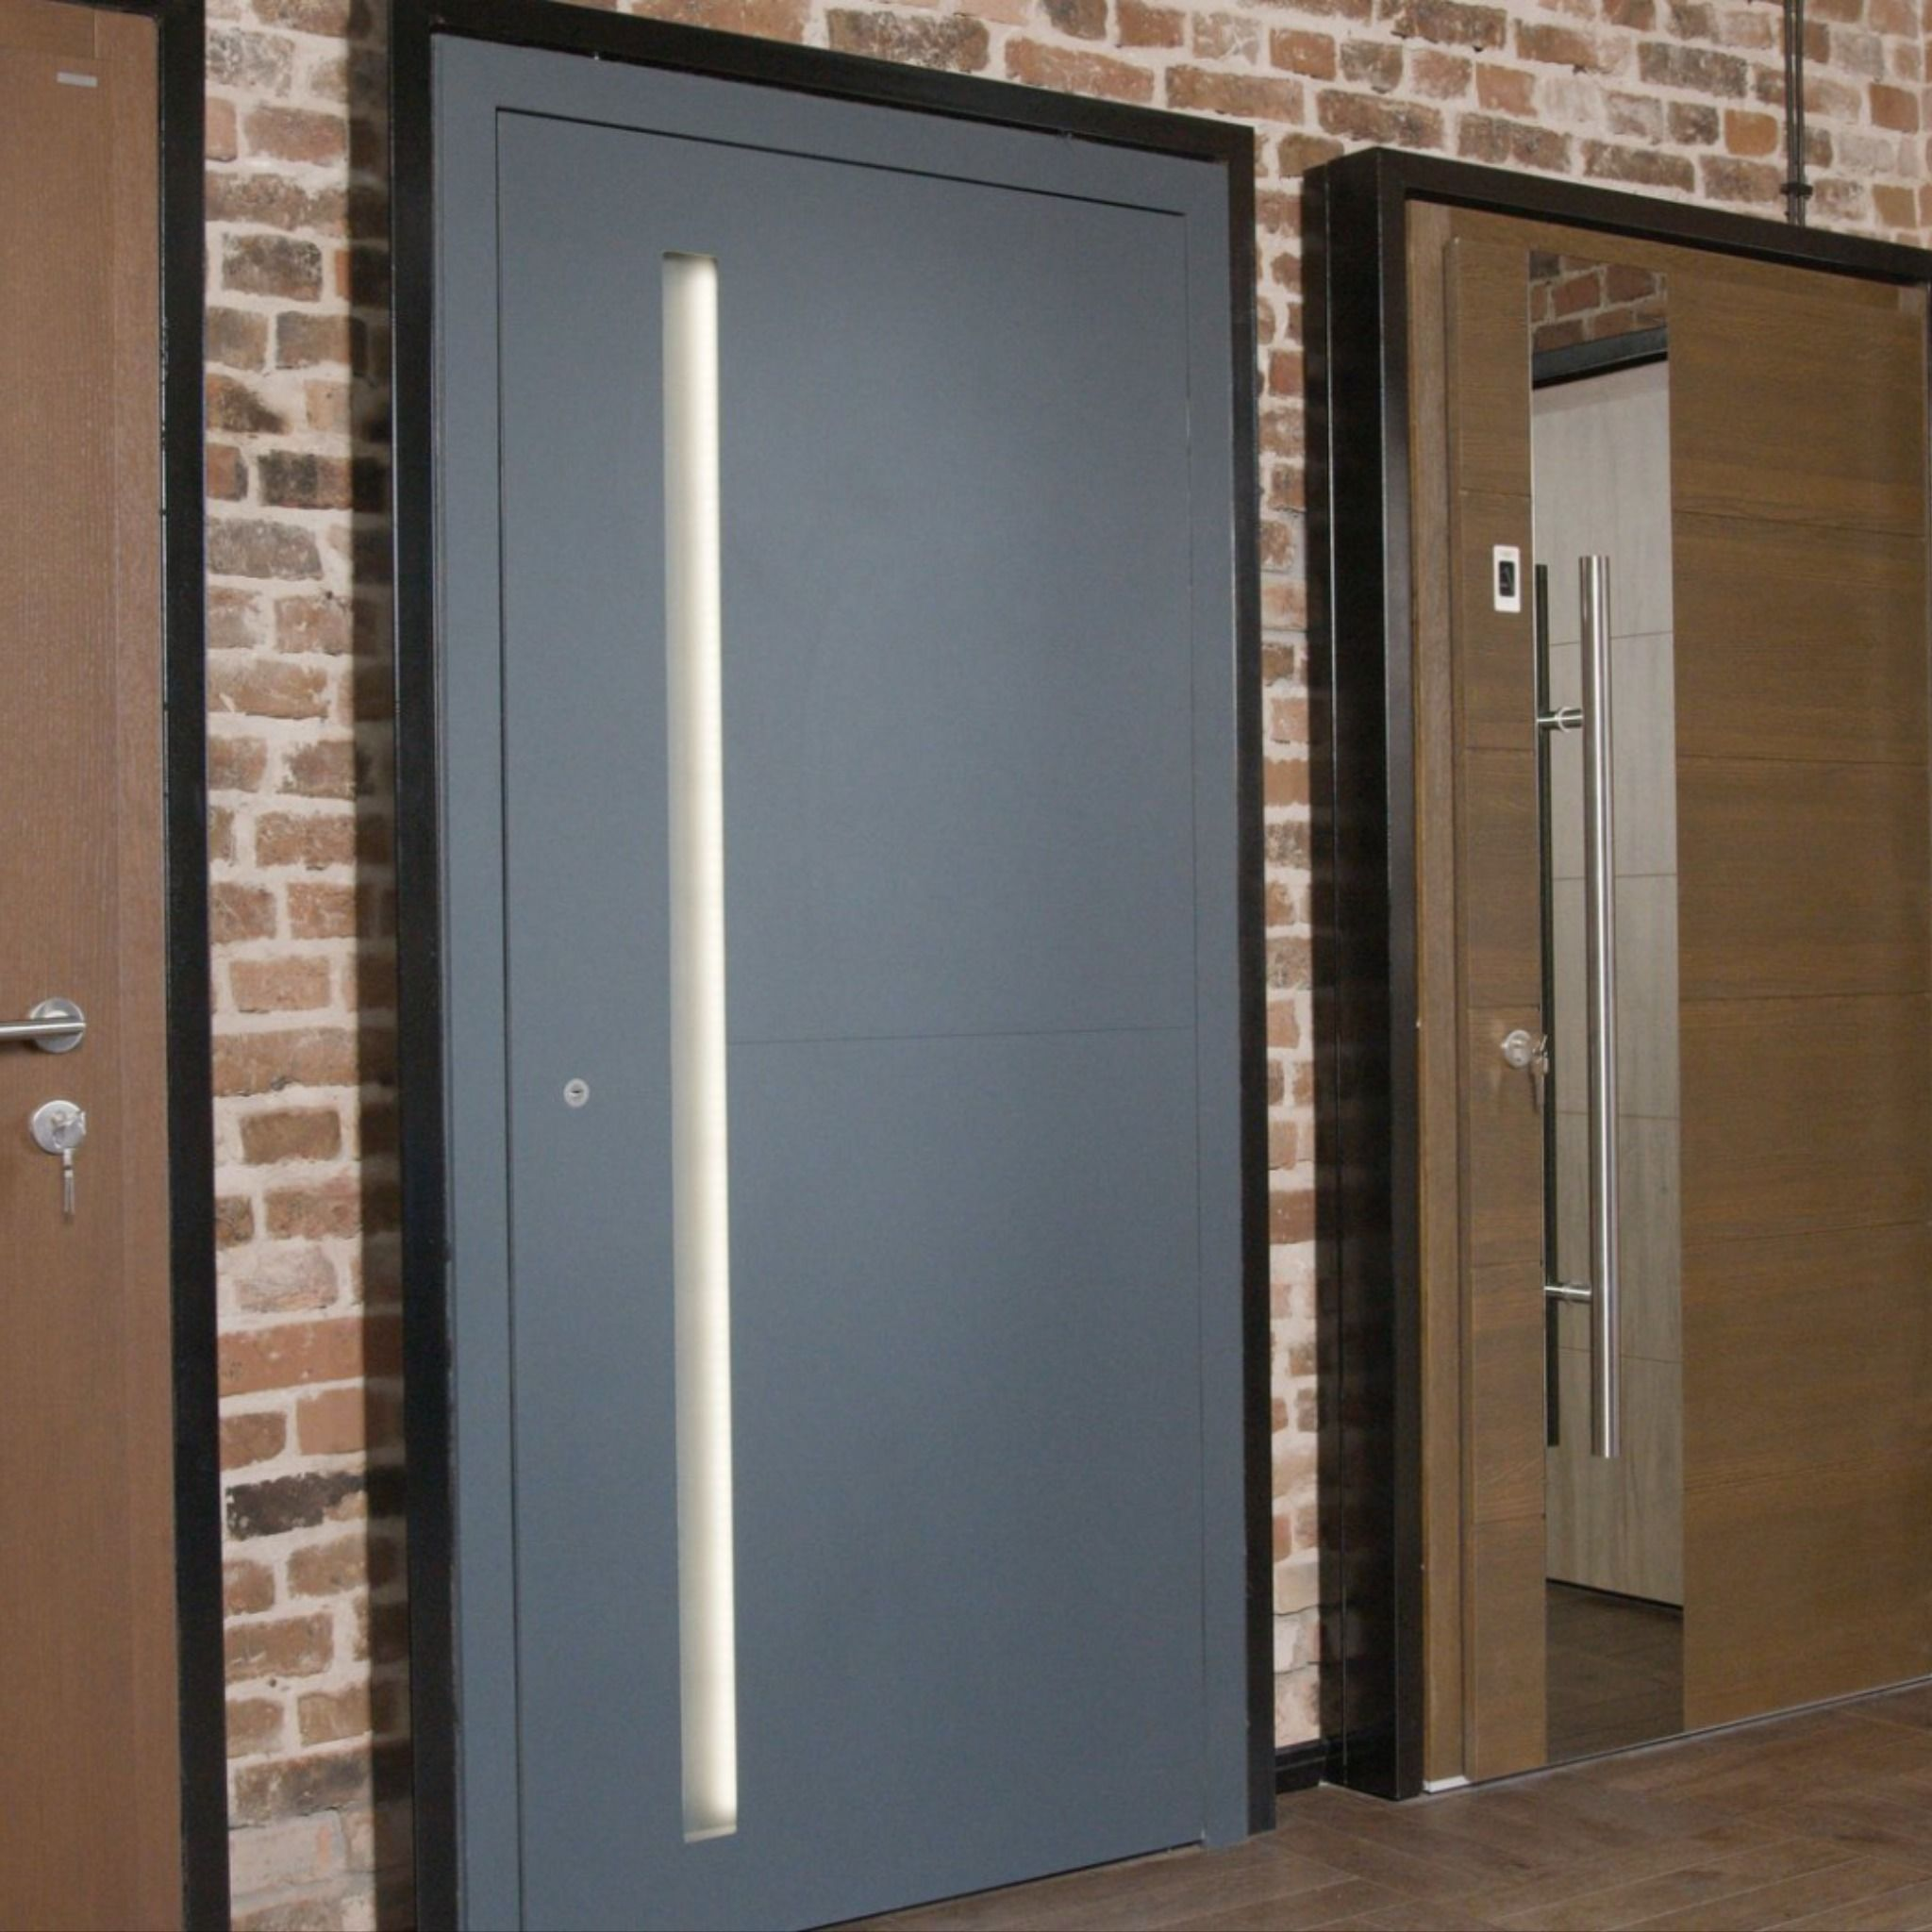 Wooden doors with an aluminum cover